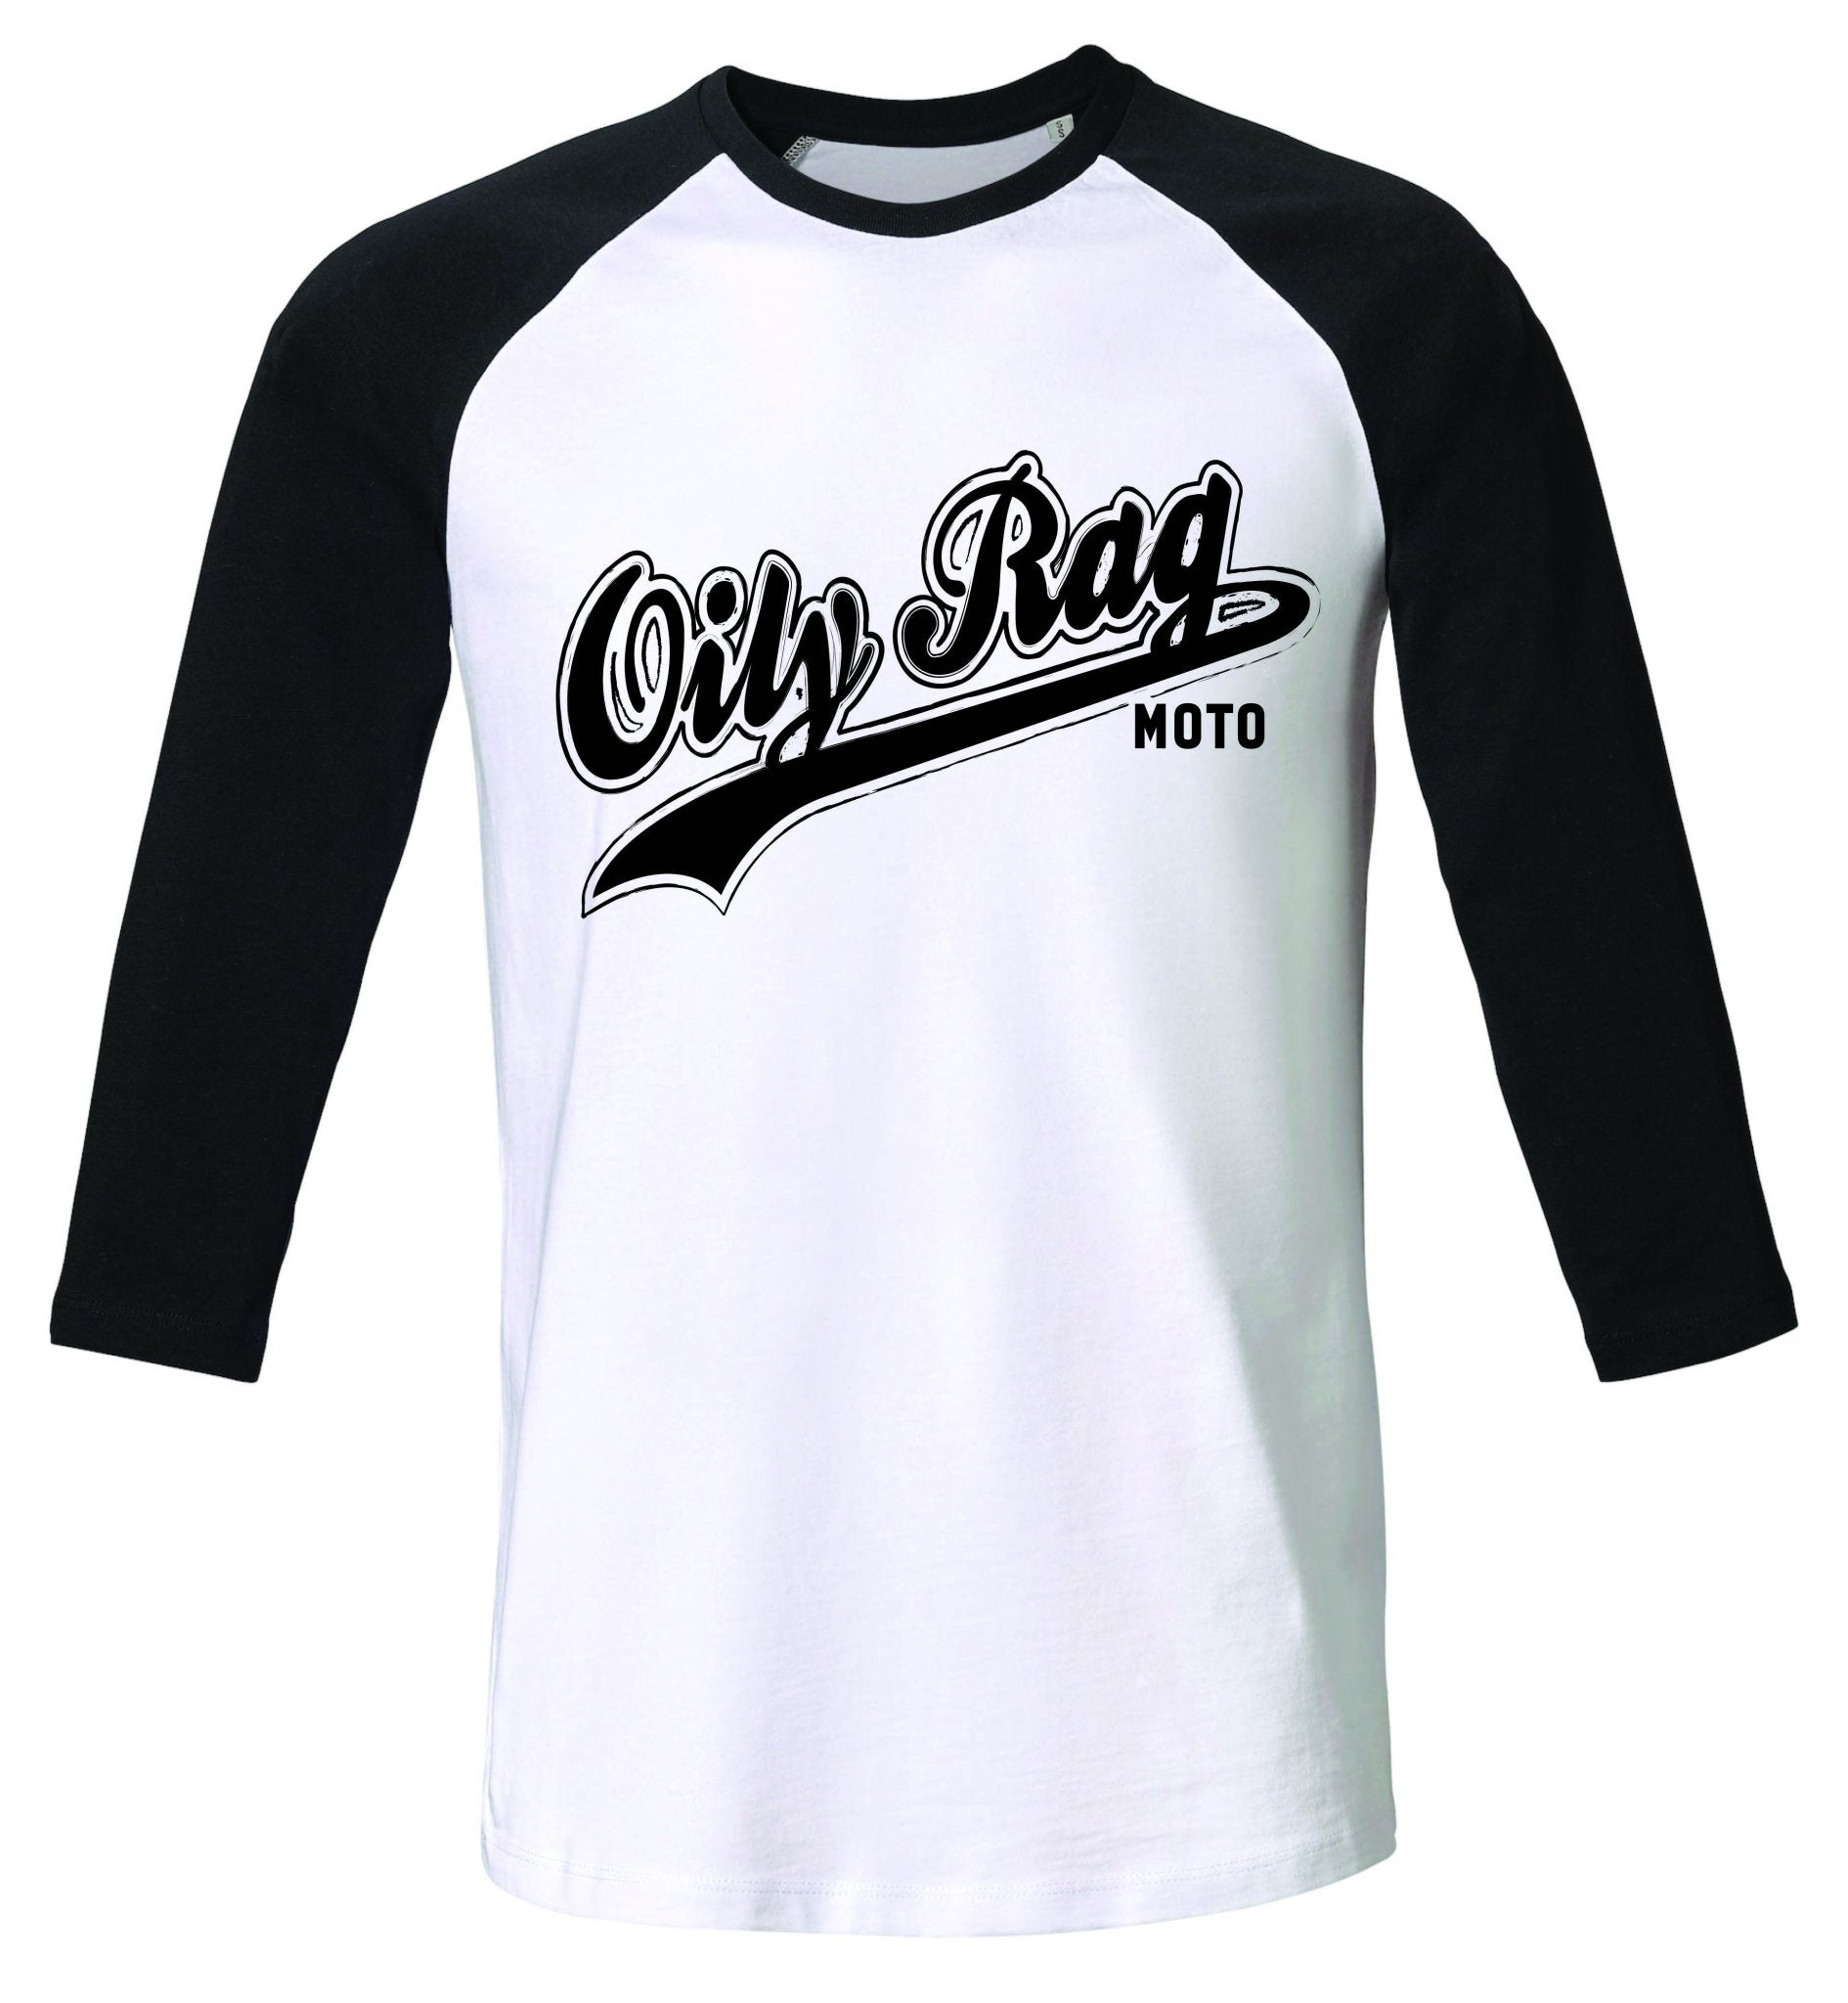 Oily Rag Clothing - Oily Rag Clothing Moto Raglan 3/4 Length Sleeve T'Shirt - T-Shirts - Salt Flats Clothing